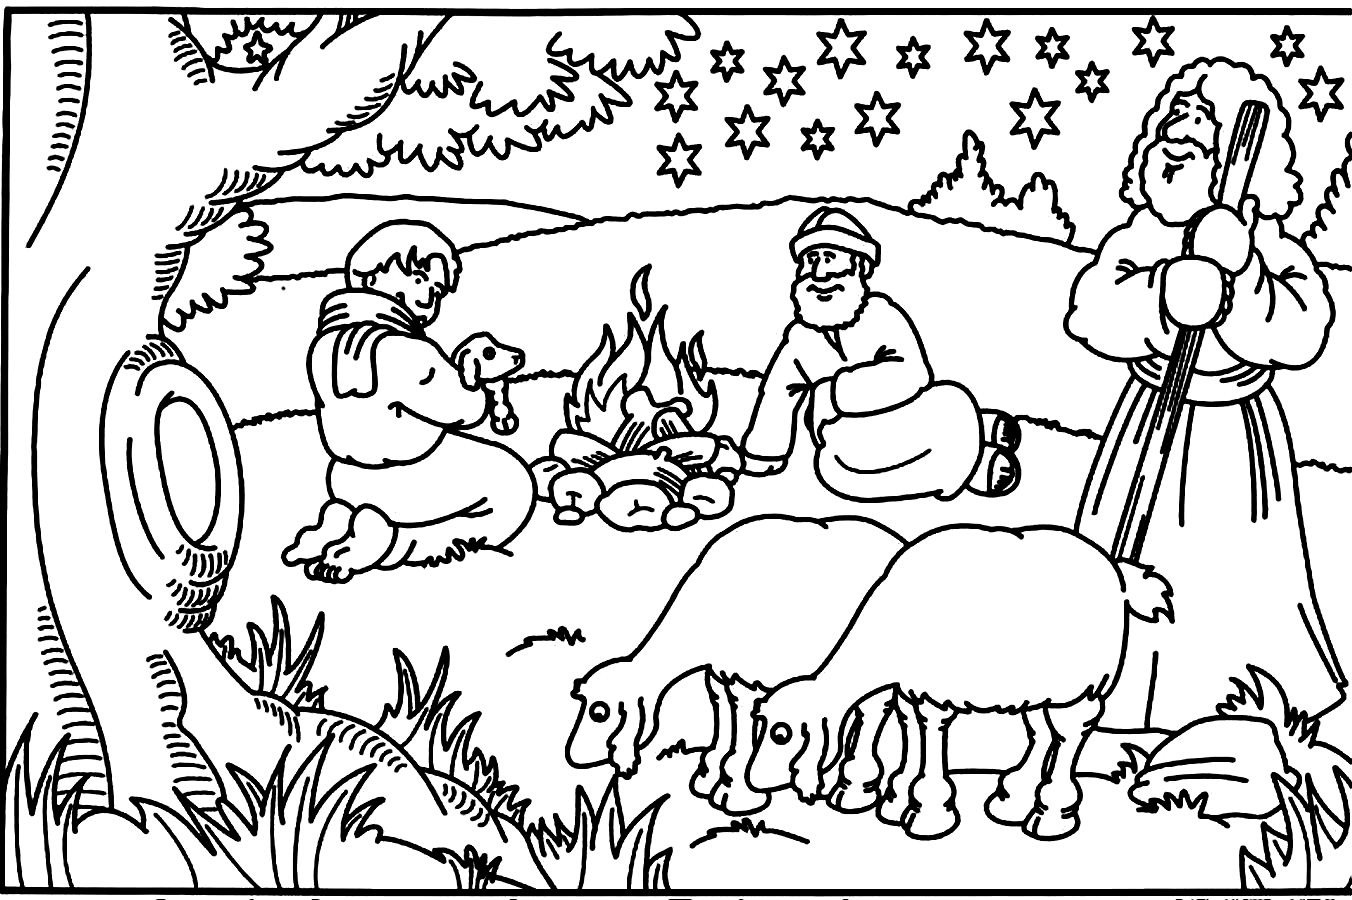 Story Book Coloring Pages At Getdrawings Com Free For Personal Use